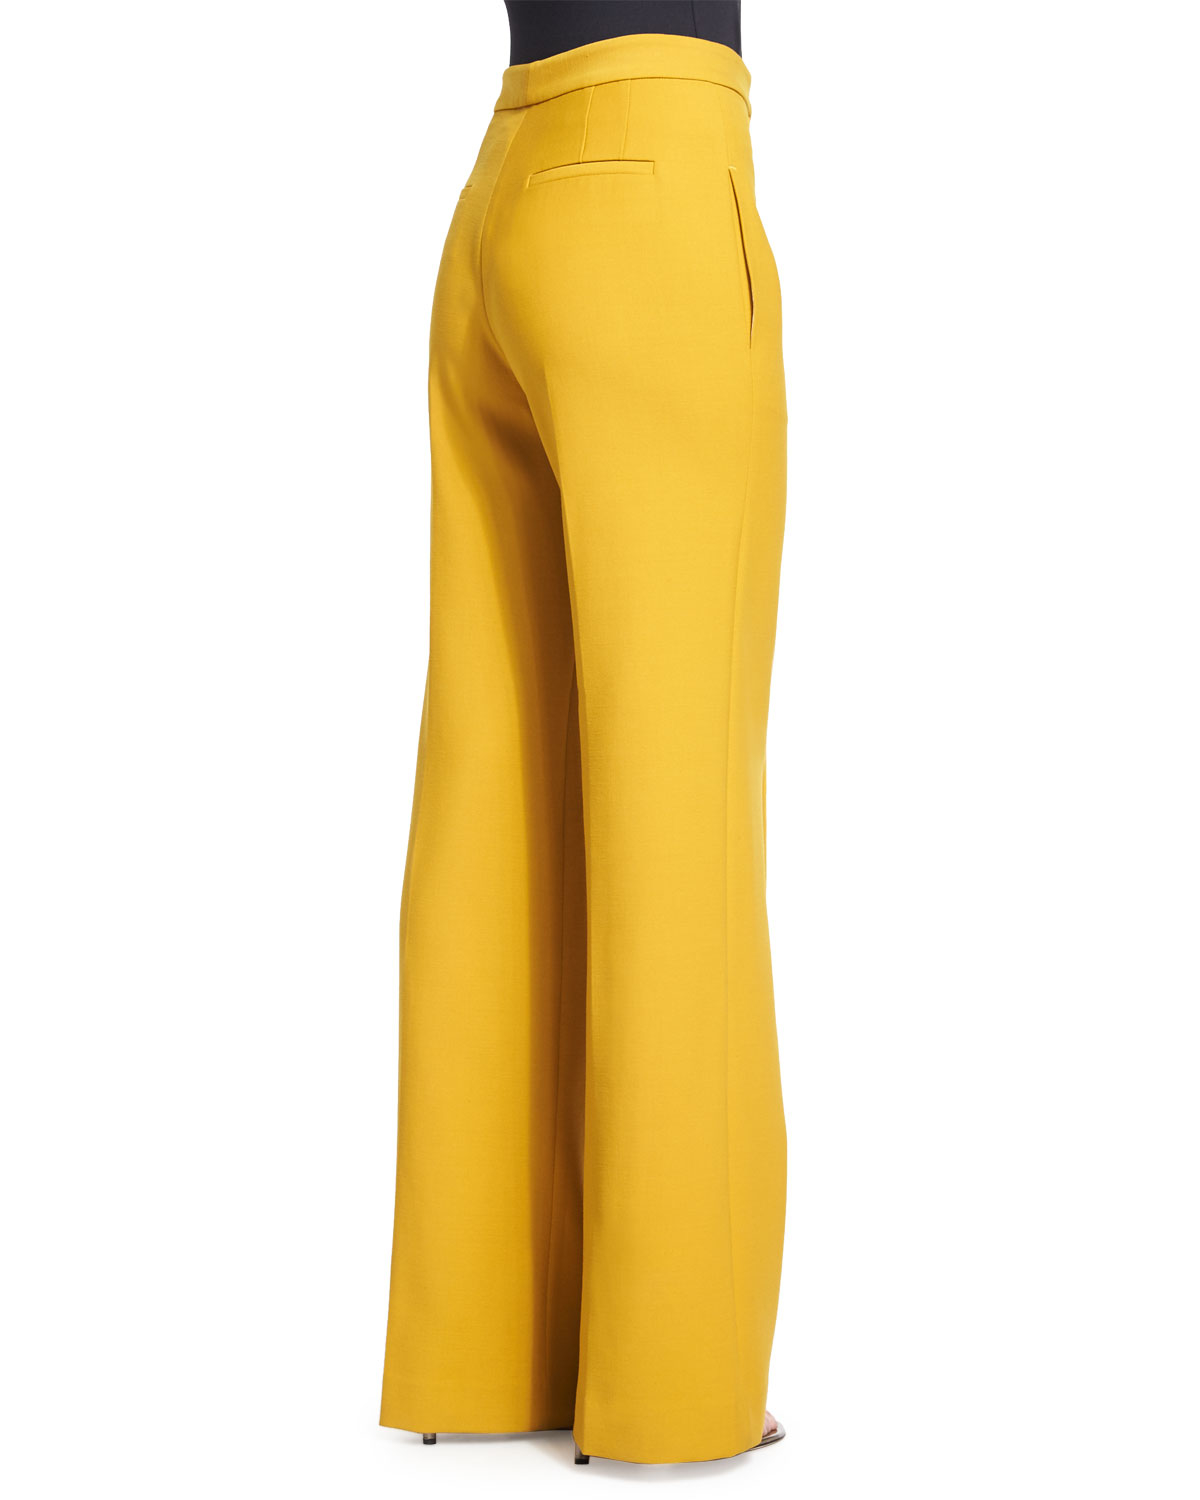 Adam lippes High-waist Wide-leg Pants in Yellow | Lyst